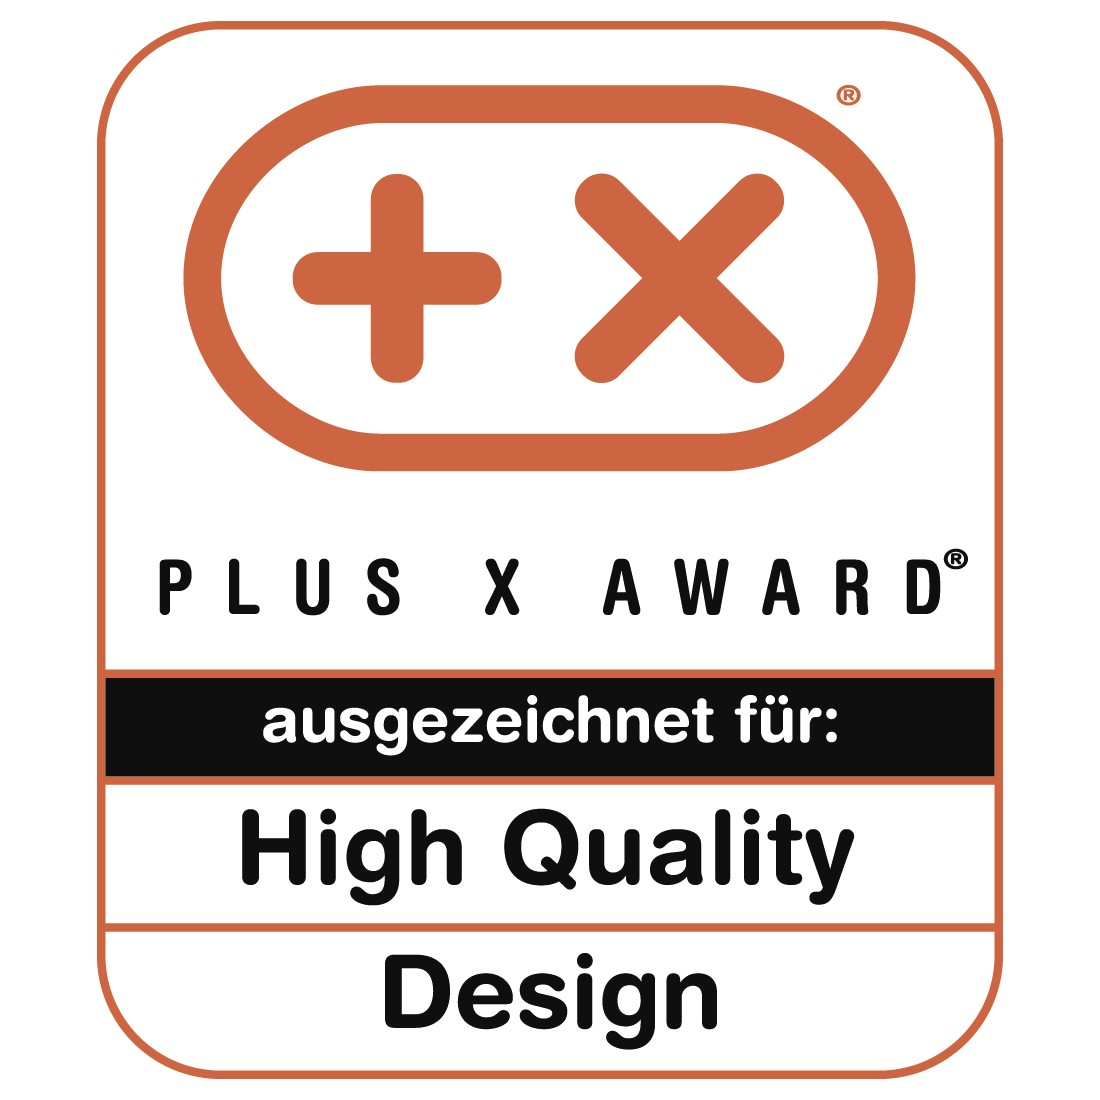 tex4 Druckfähiges Testurteil 4 - Avinity, High Speed HDMI™-Kabel, St. - St., Filter, oval, vergoldet, Ethernet, 2 m